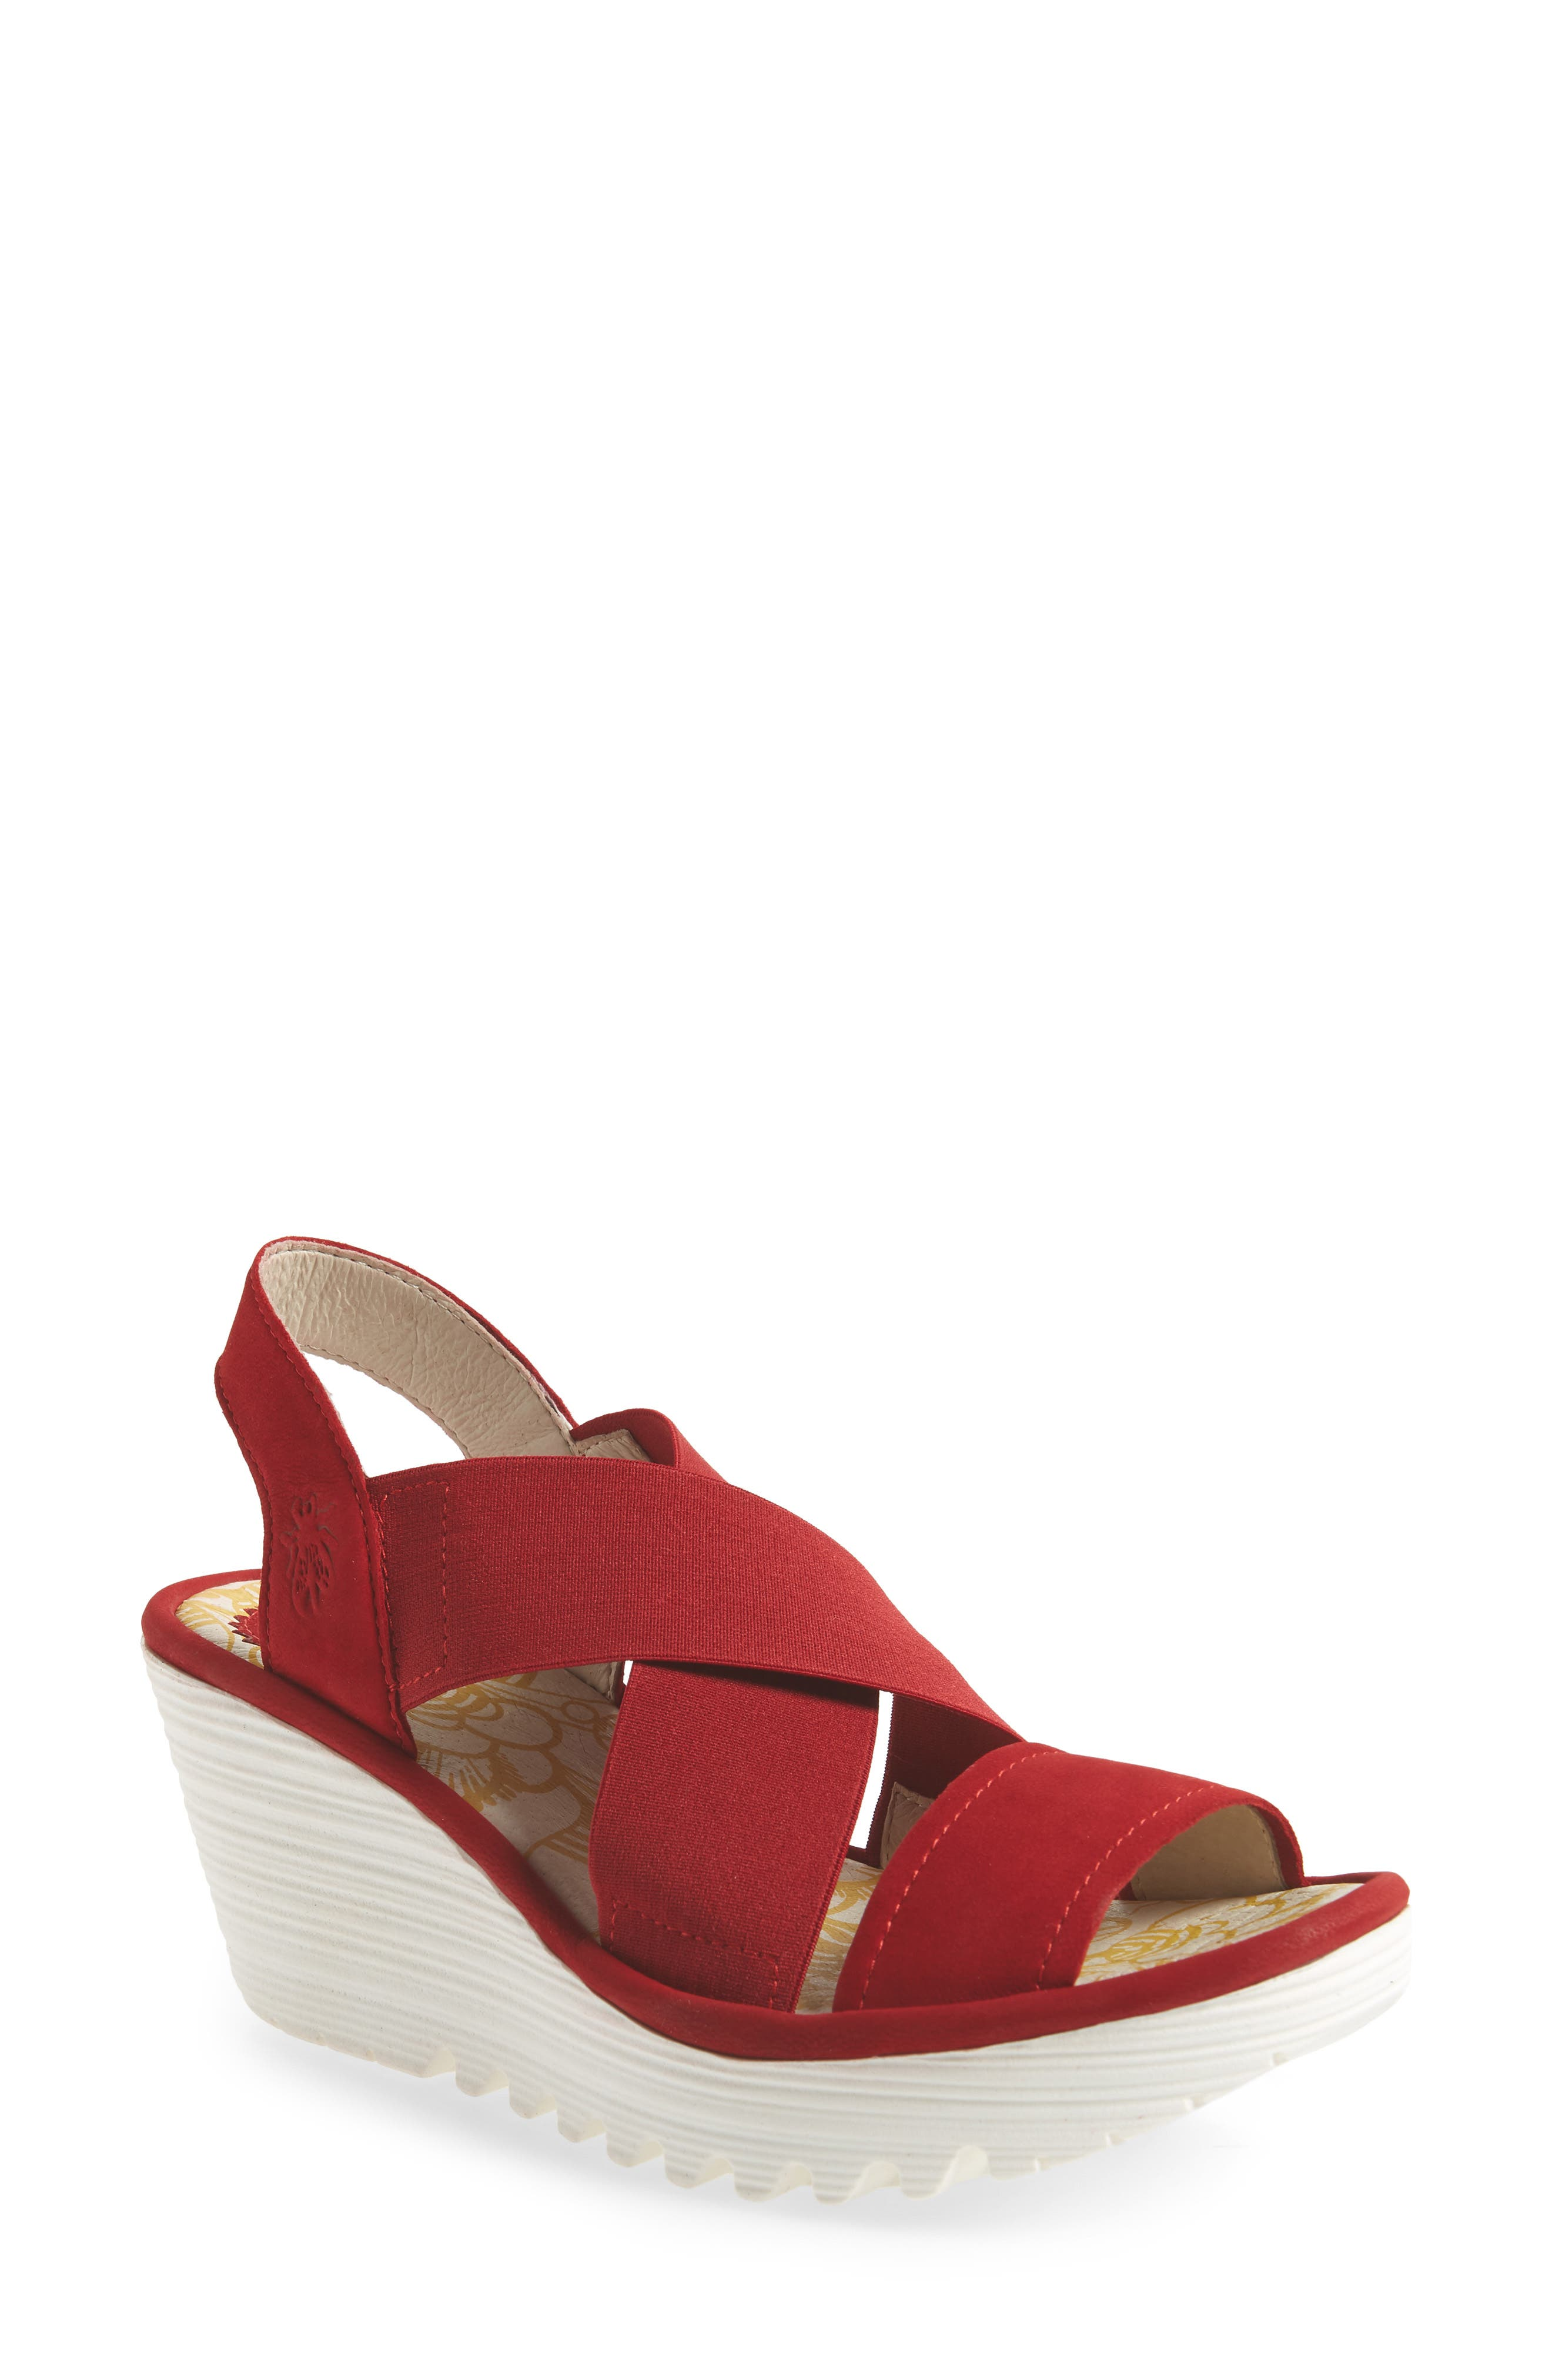 Yaji Cross Wedge Sandal,                         Main,                         color, RED LEATHER